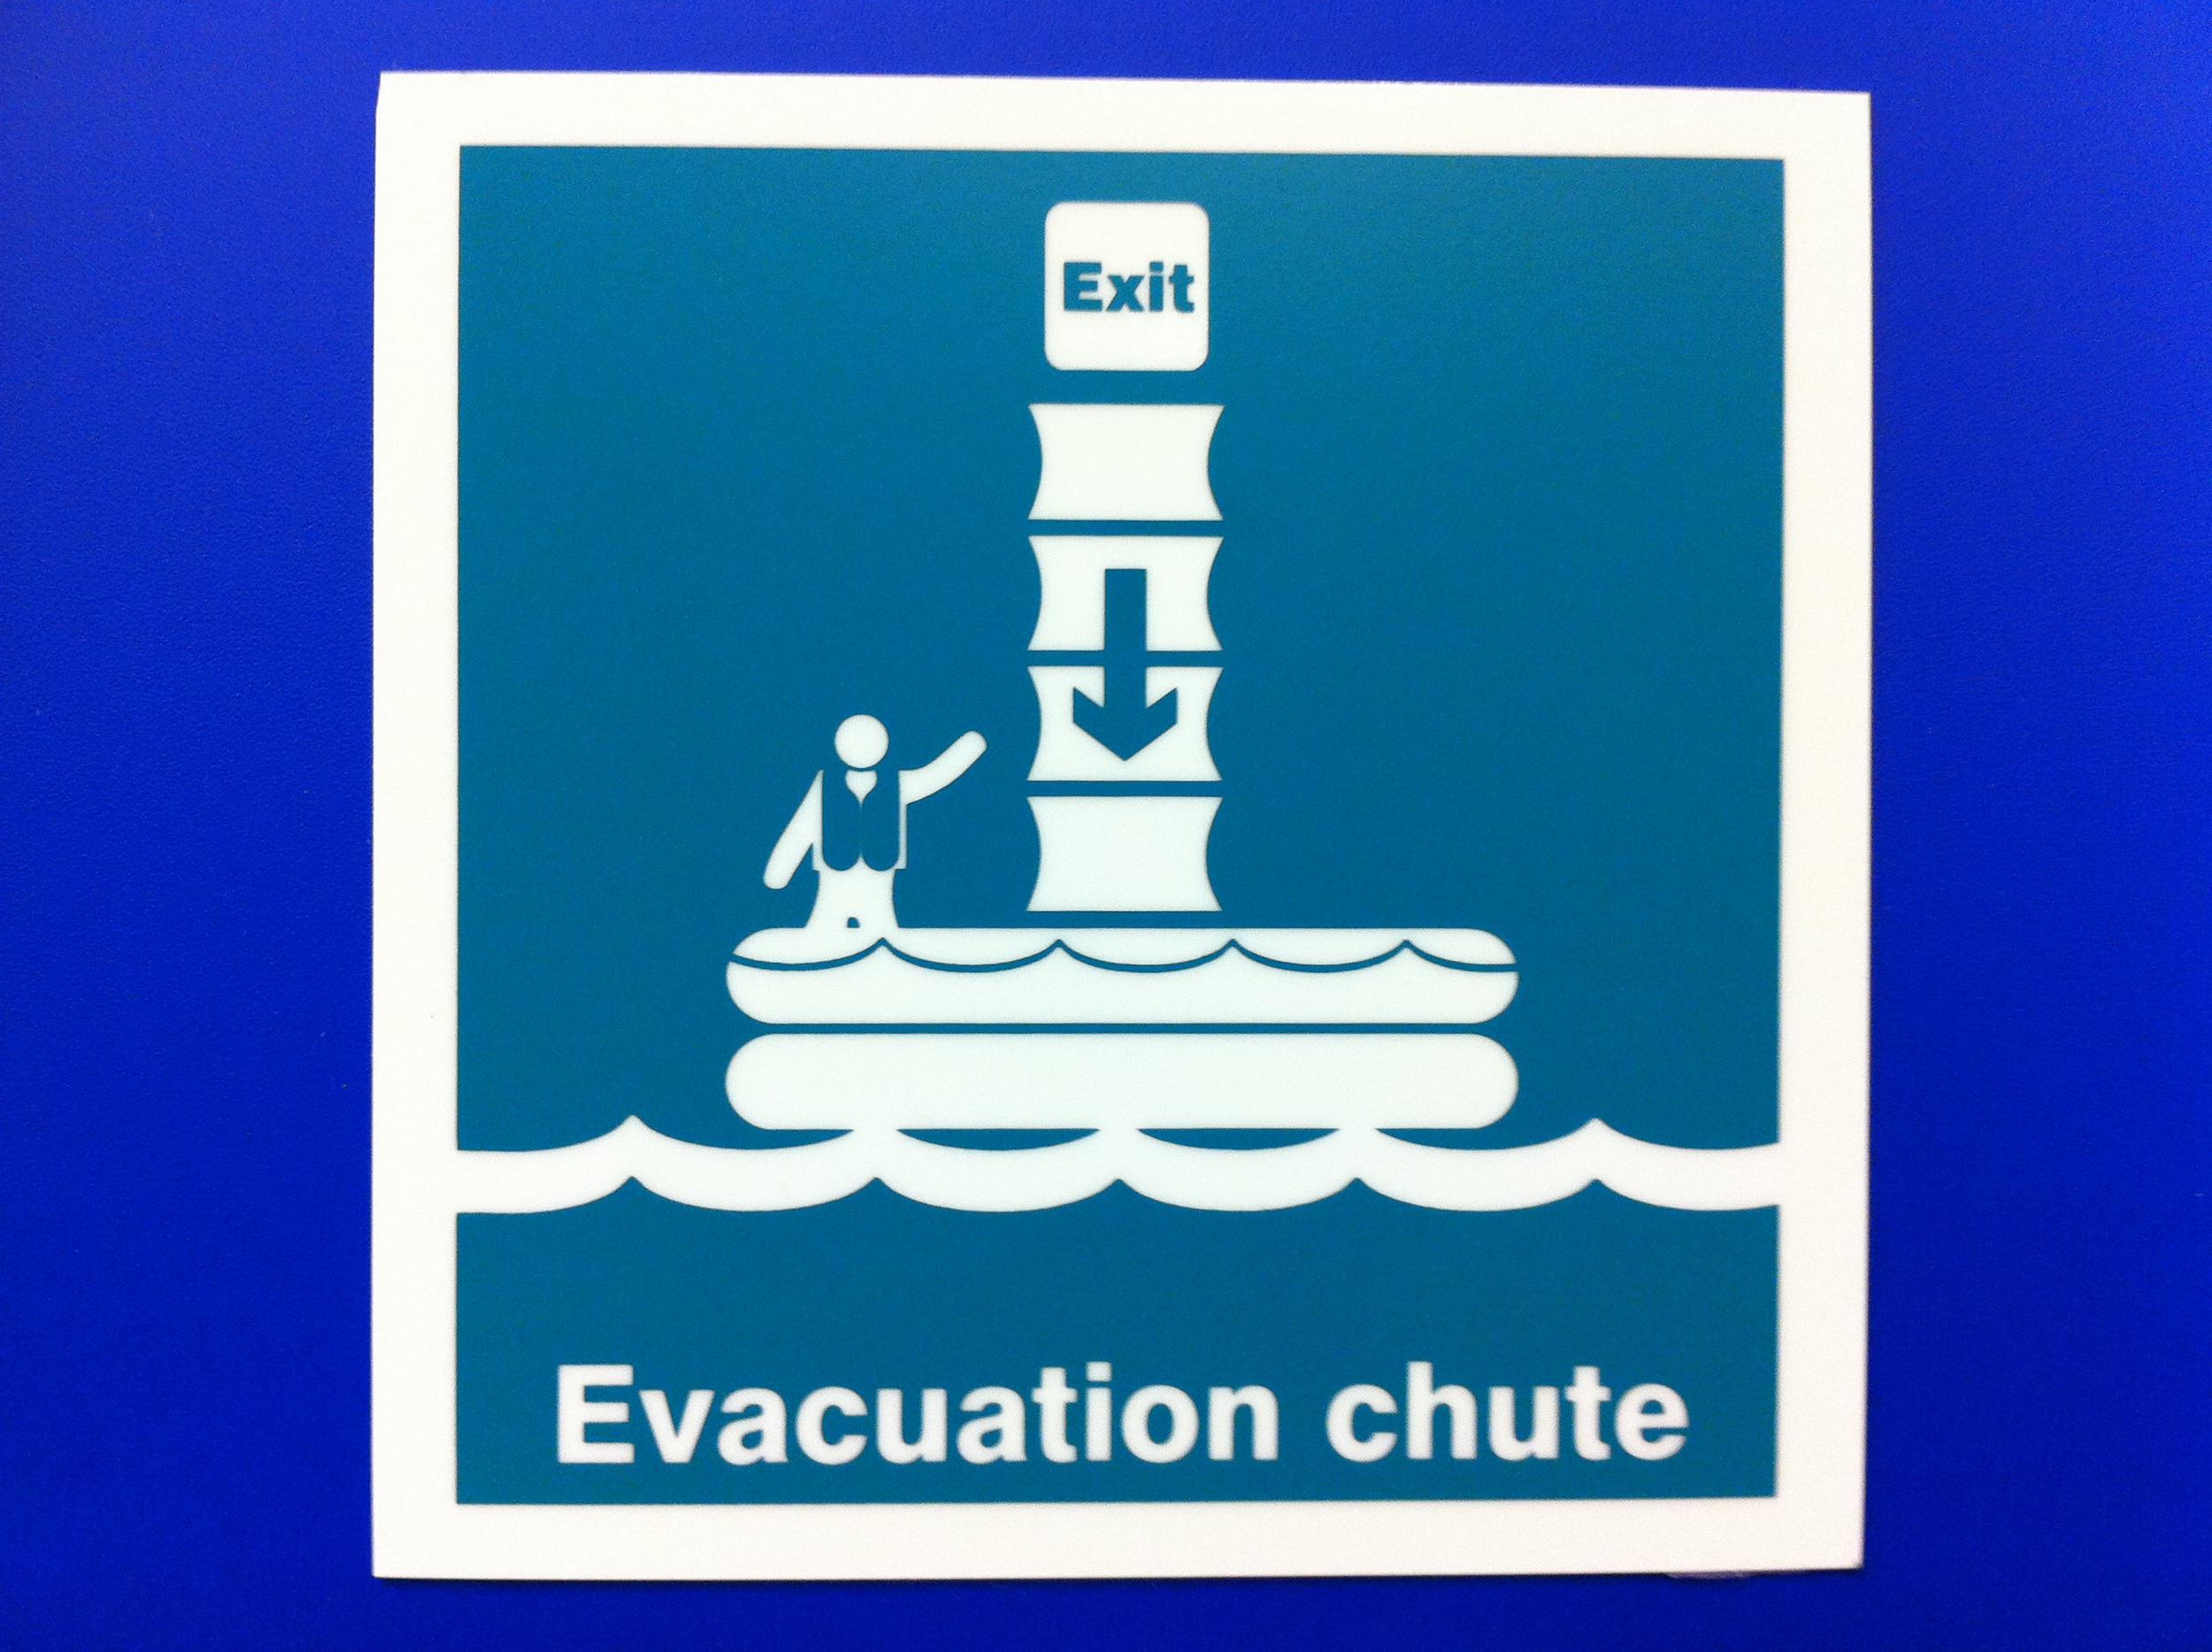 """In case of an emergency, ride the """"All new fun chute into the inflatable party pool!"""""""